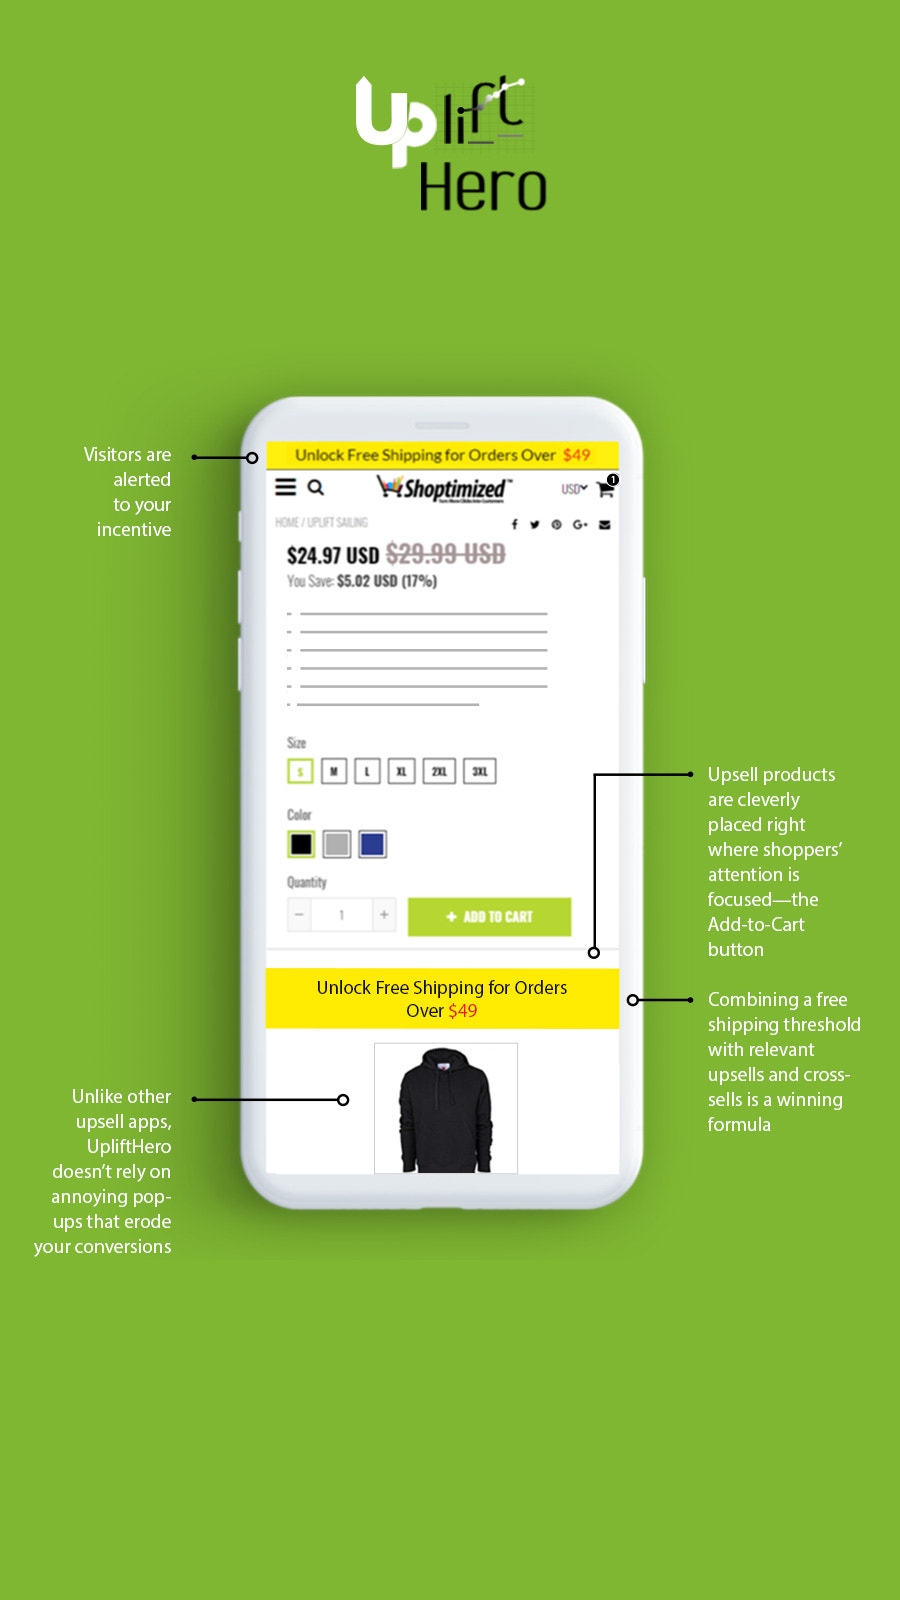 One Click Upsell App Shopify